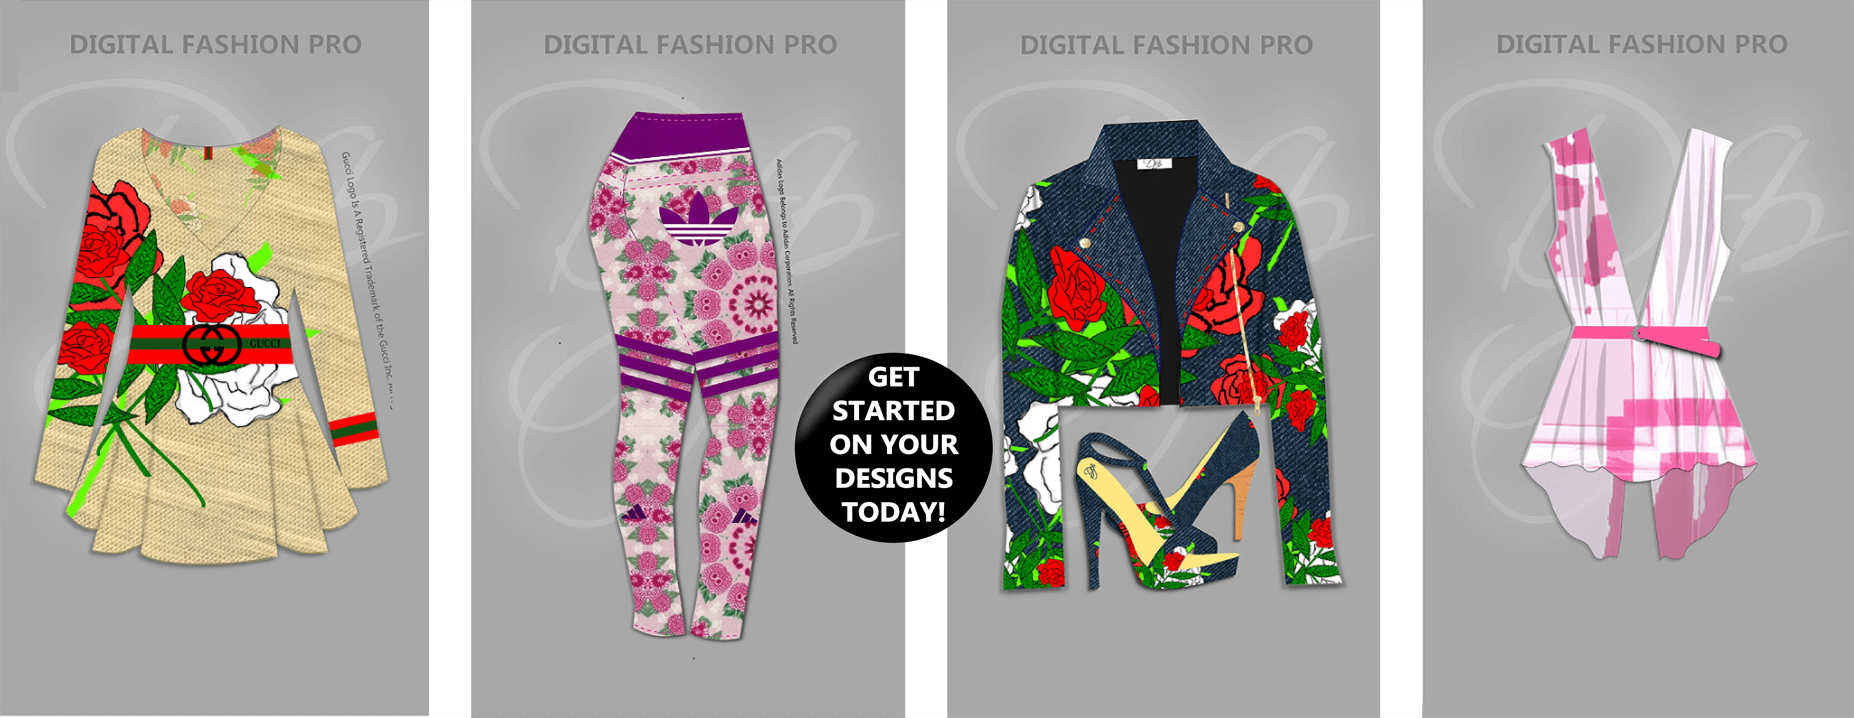 Starting a clothing line fashion design software - Digital Fashion Pro - floral collection